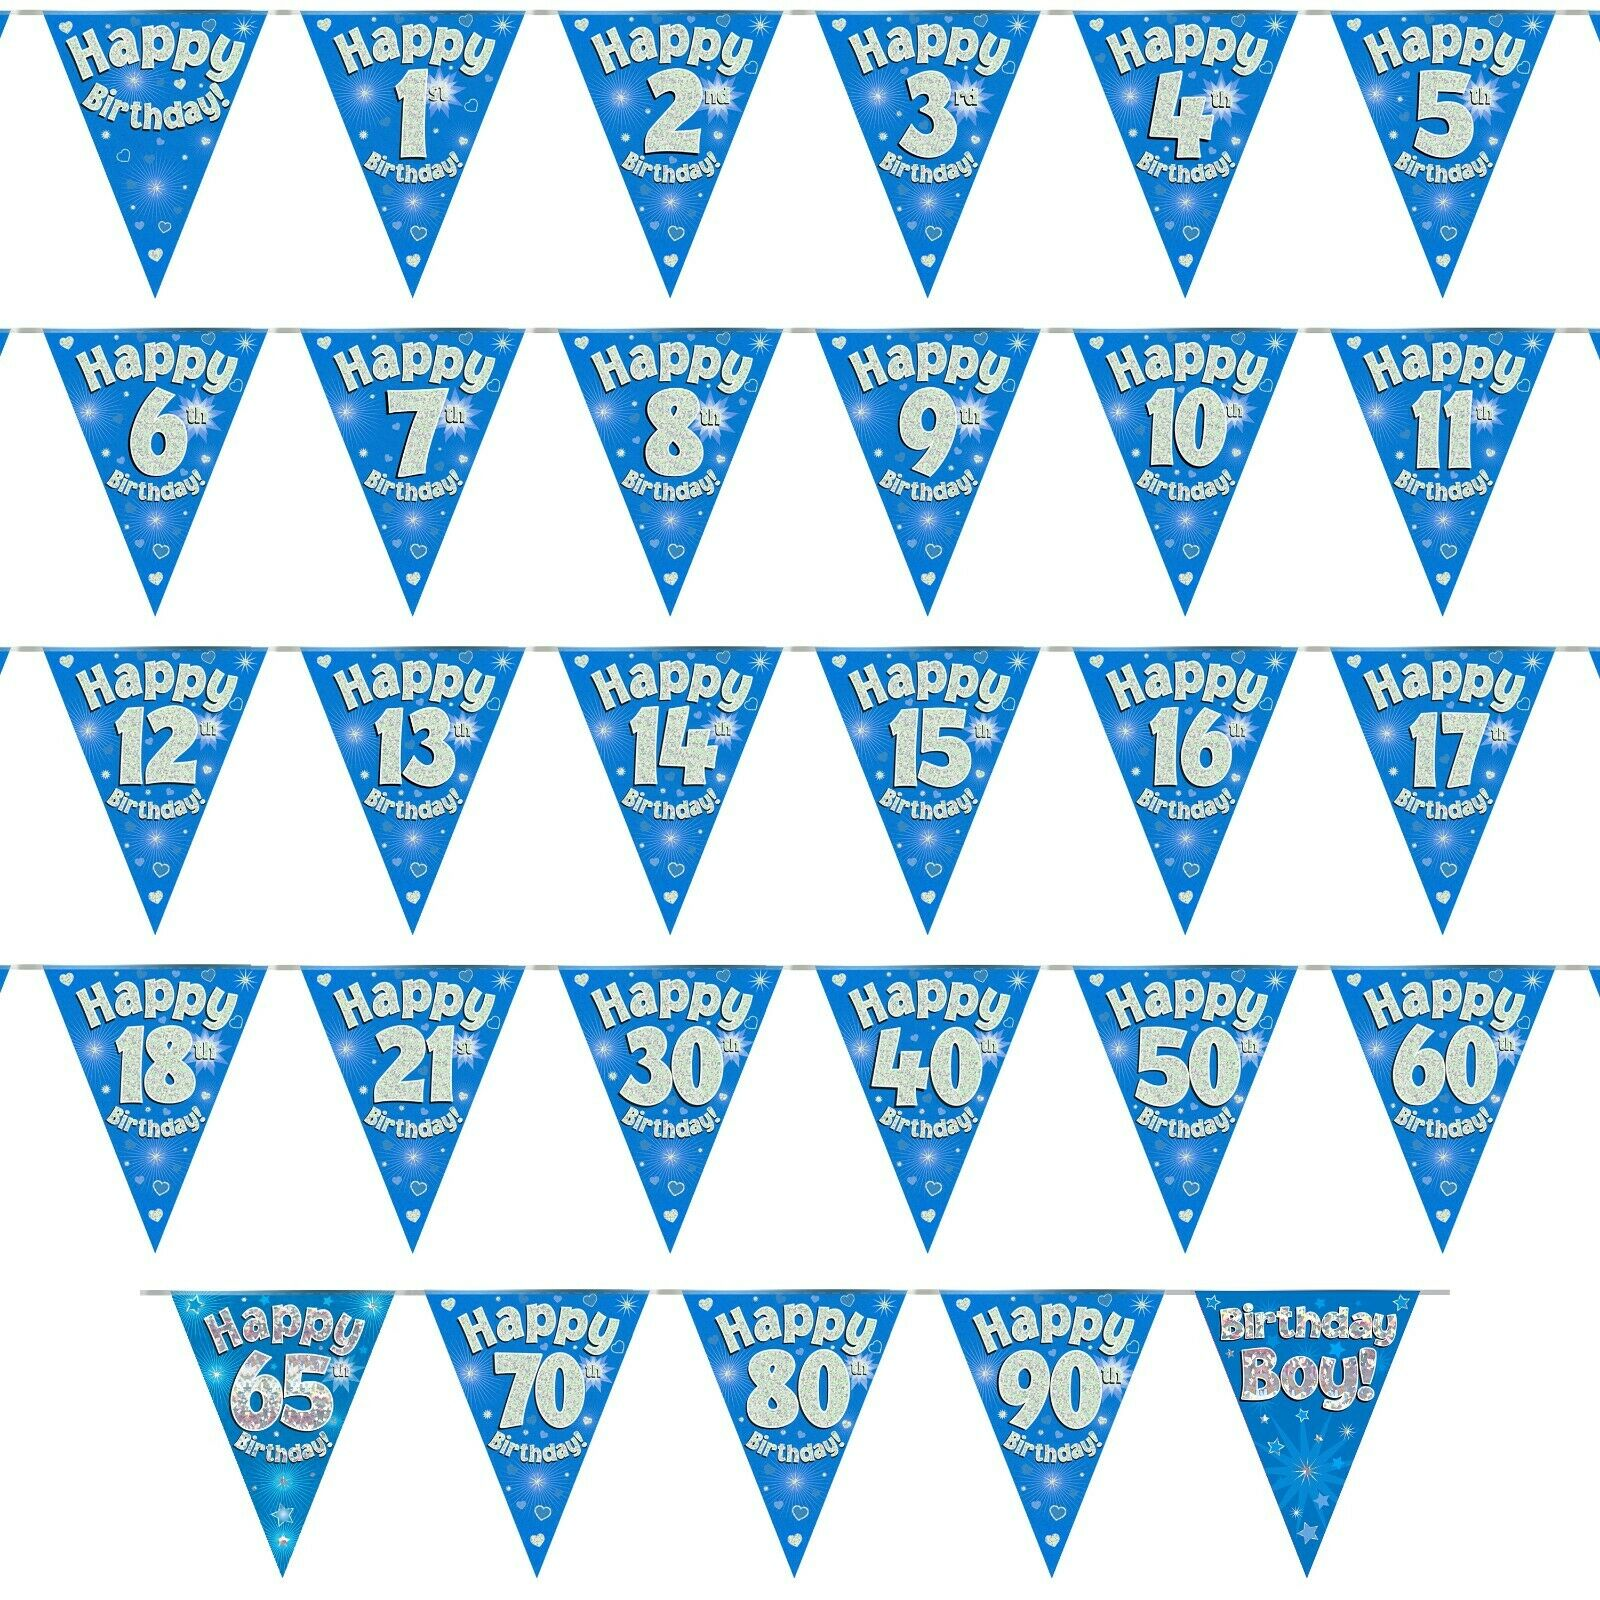 7TH BIRTHDAY PARTY BUNTING BANNER BLUE HOLOGRAPHIC 11 FLAGS 3.9M